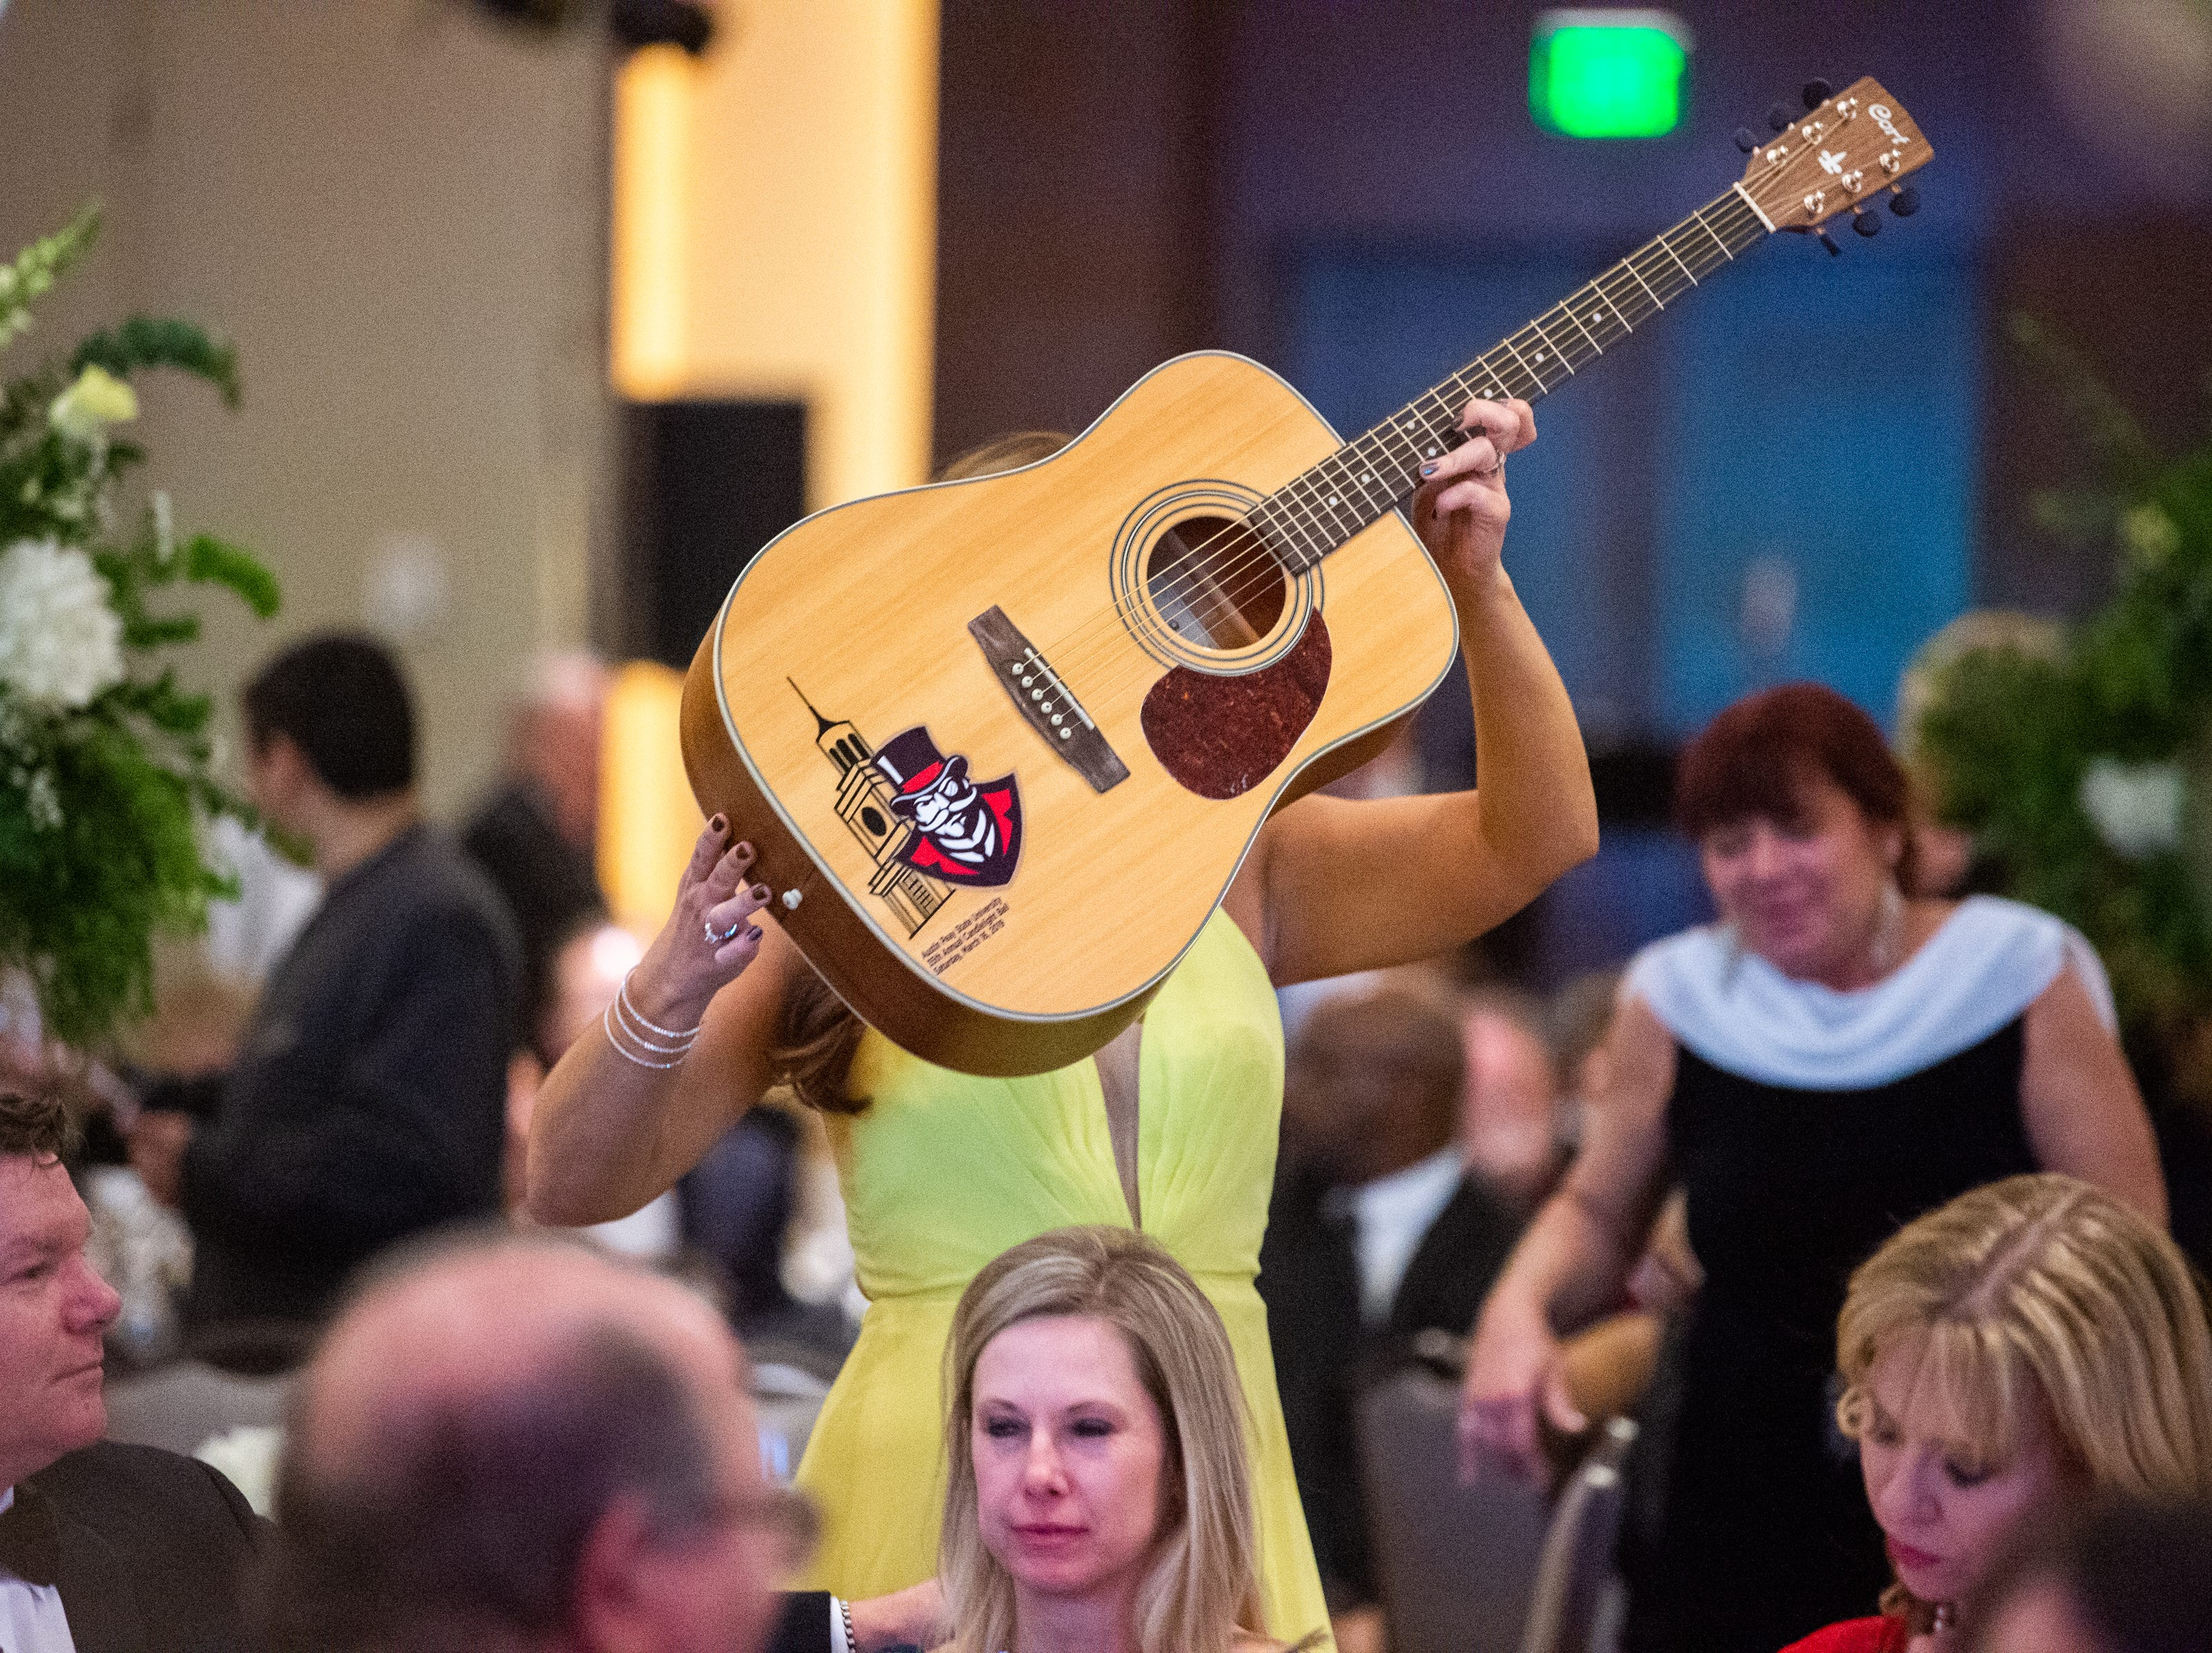 A decorated guitar is showcased for auction during Austin Peay State University's annual Candlelight Ball at the Omni Nashville Hotel Saturday, March 16, 2019, in Nashville, Tenn.